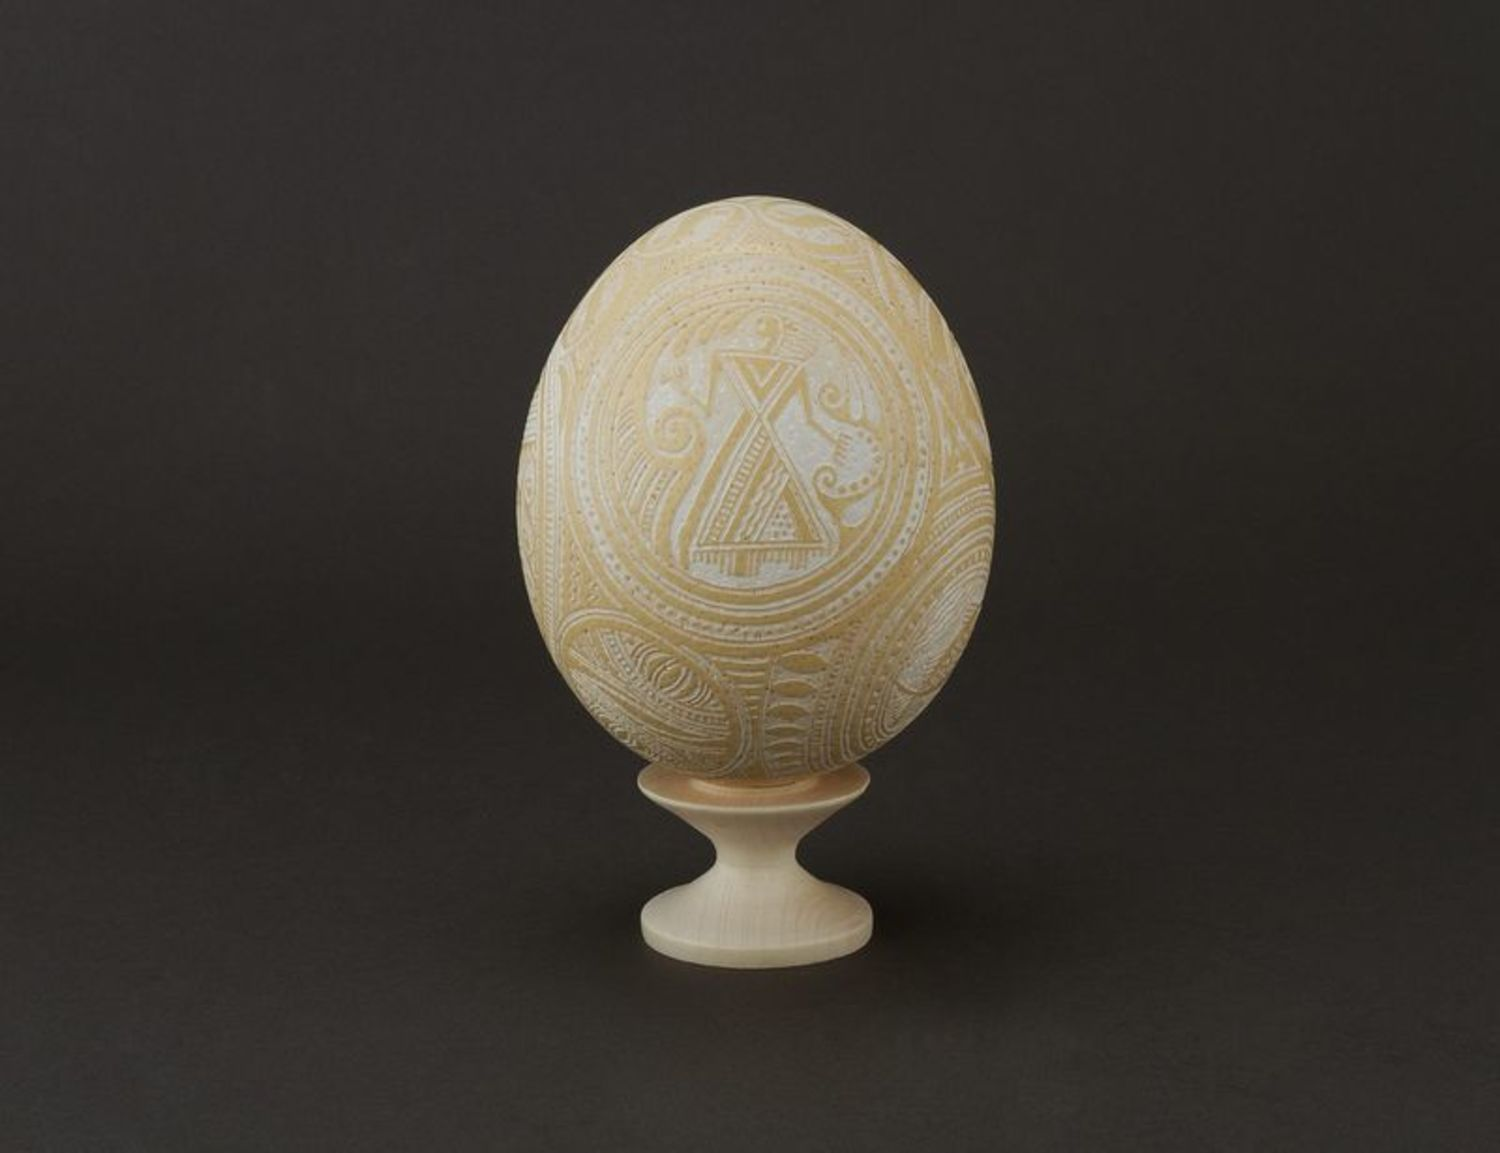 ostrich easter eggs Decorative ostrich egg etched with vinegar - MADEheart.com